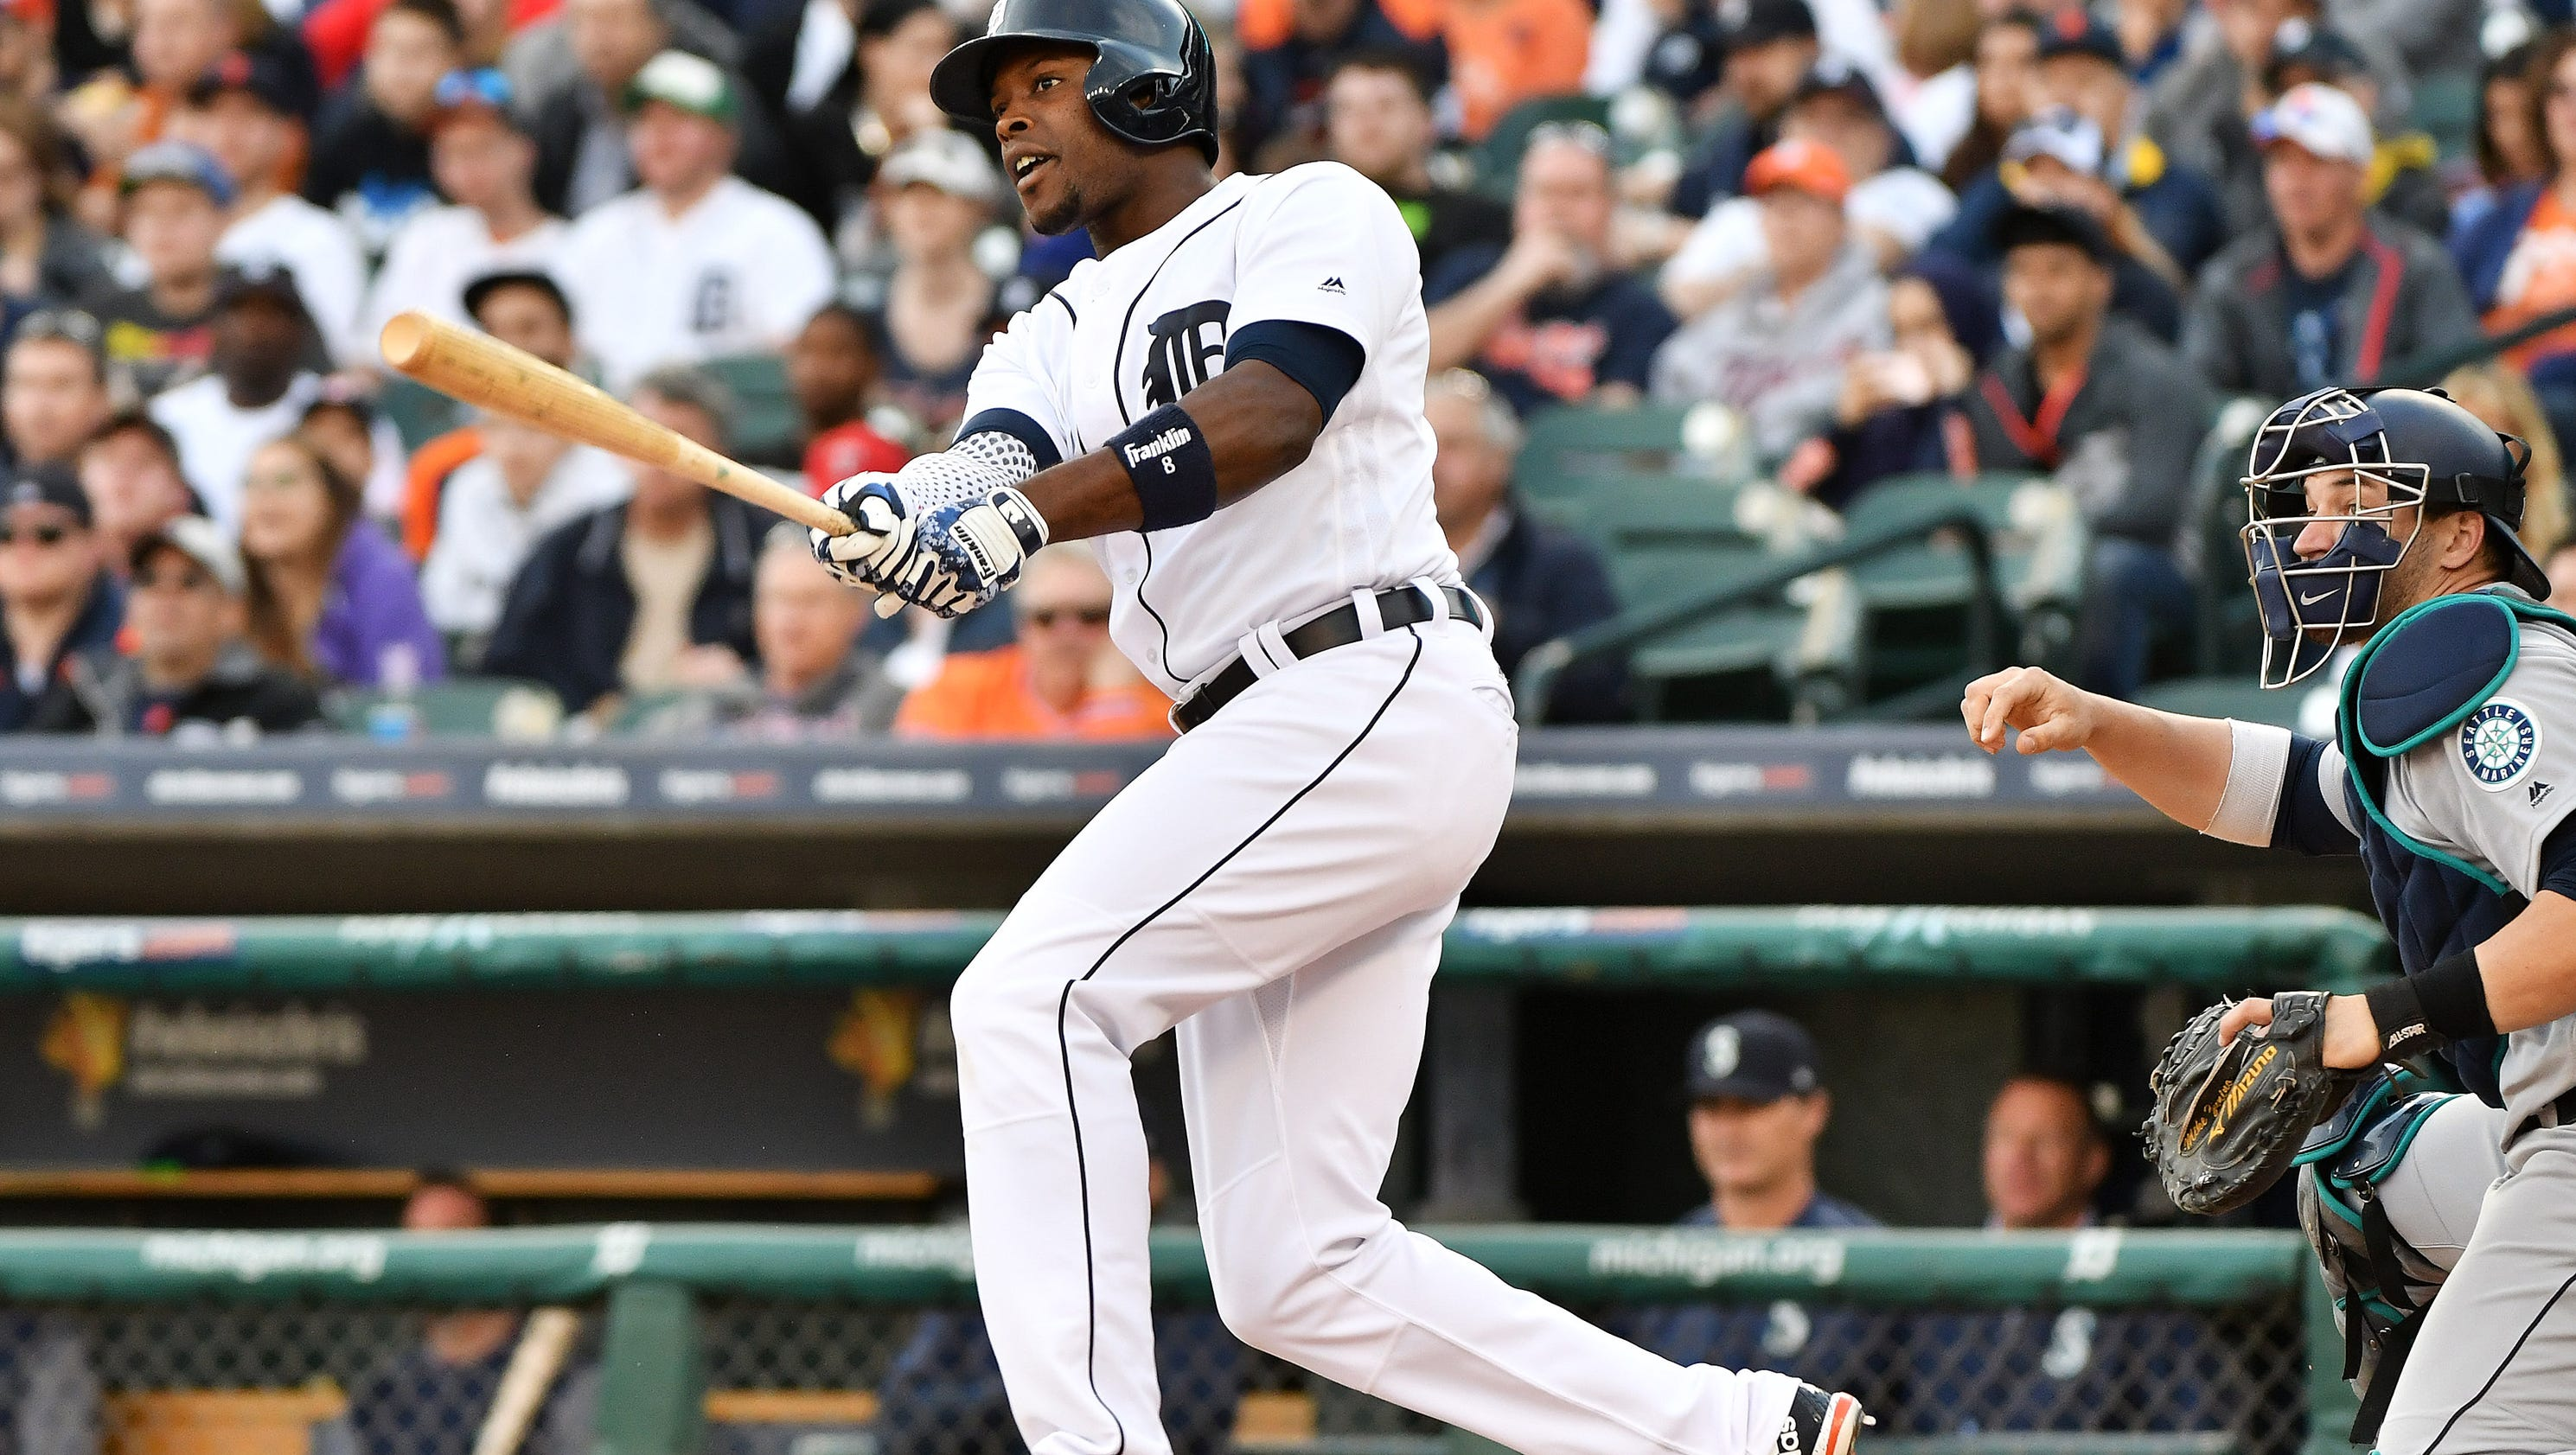 636287469857861257-2017-0425-rb-tigers-mariners251